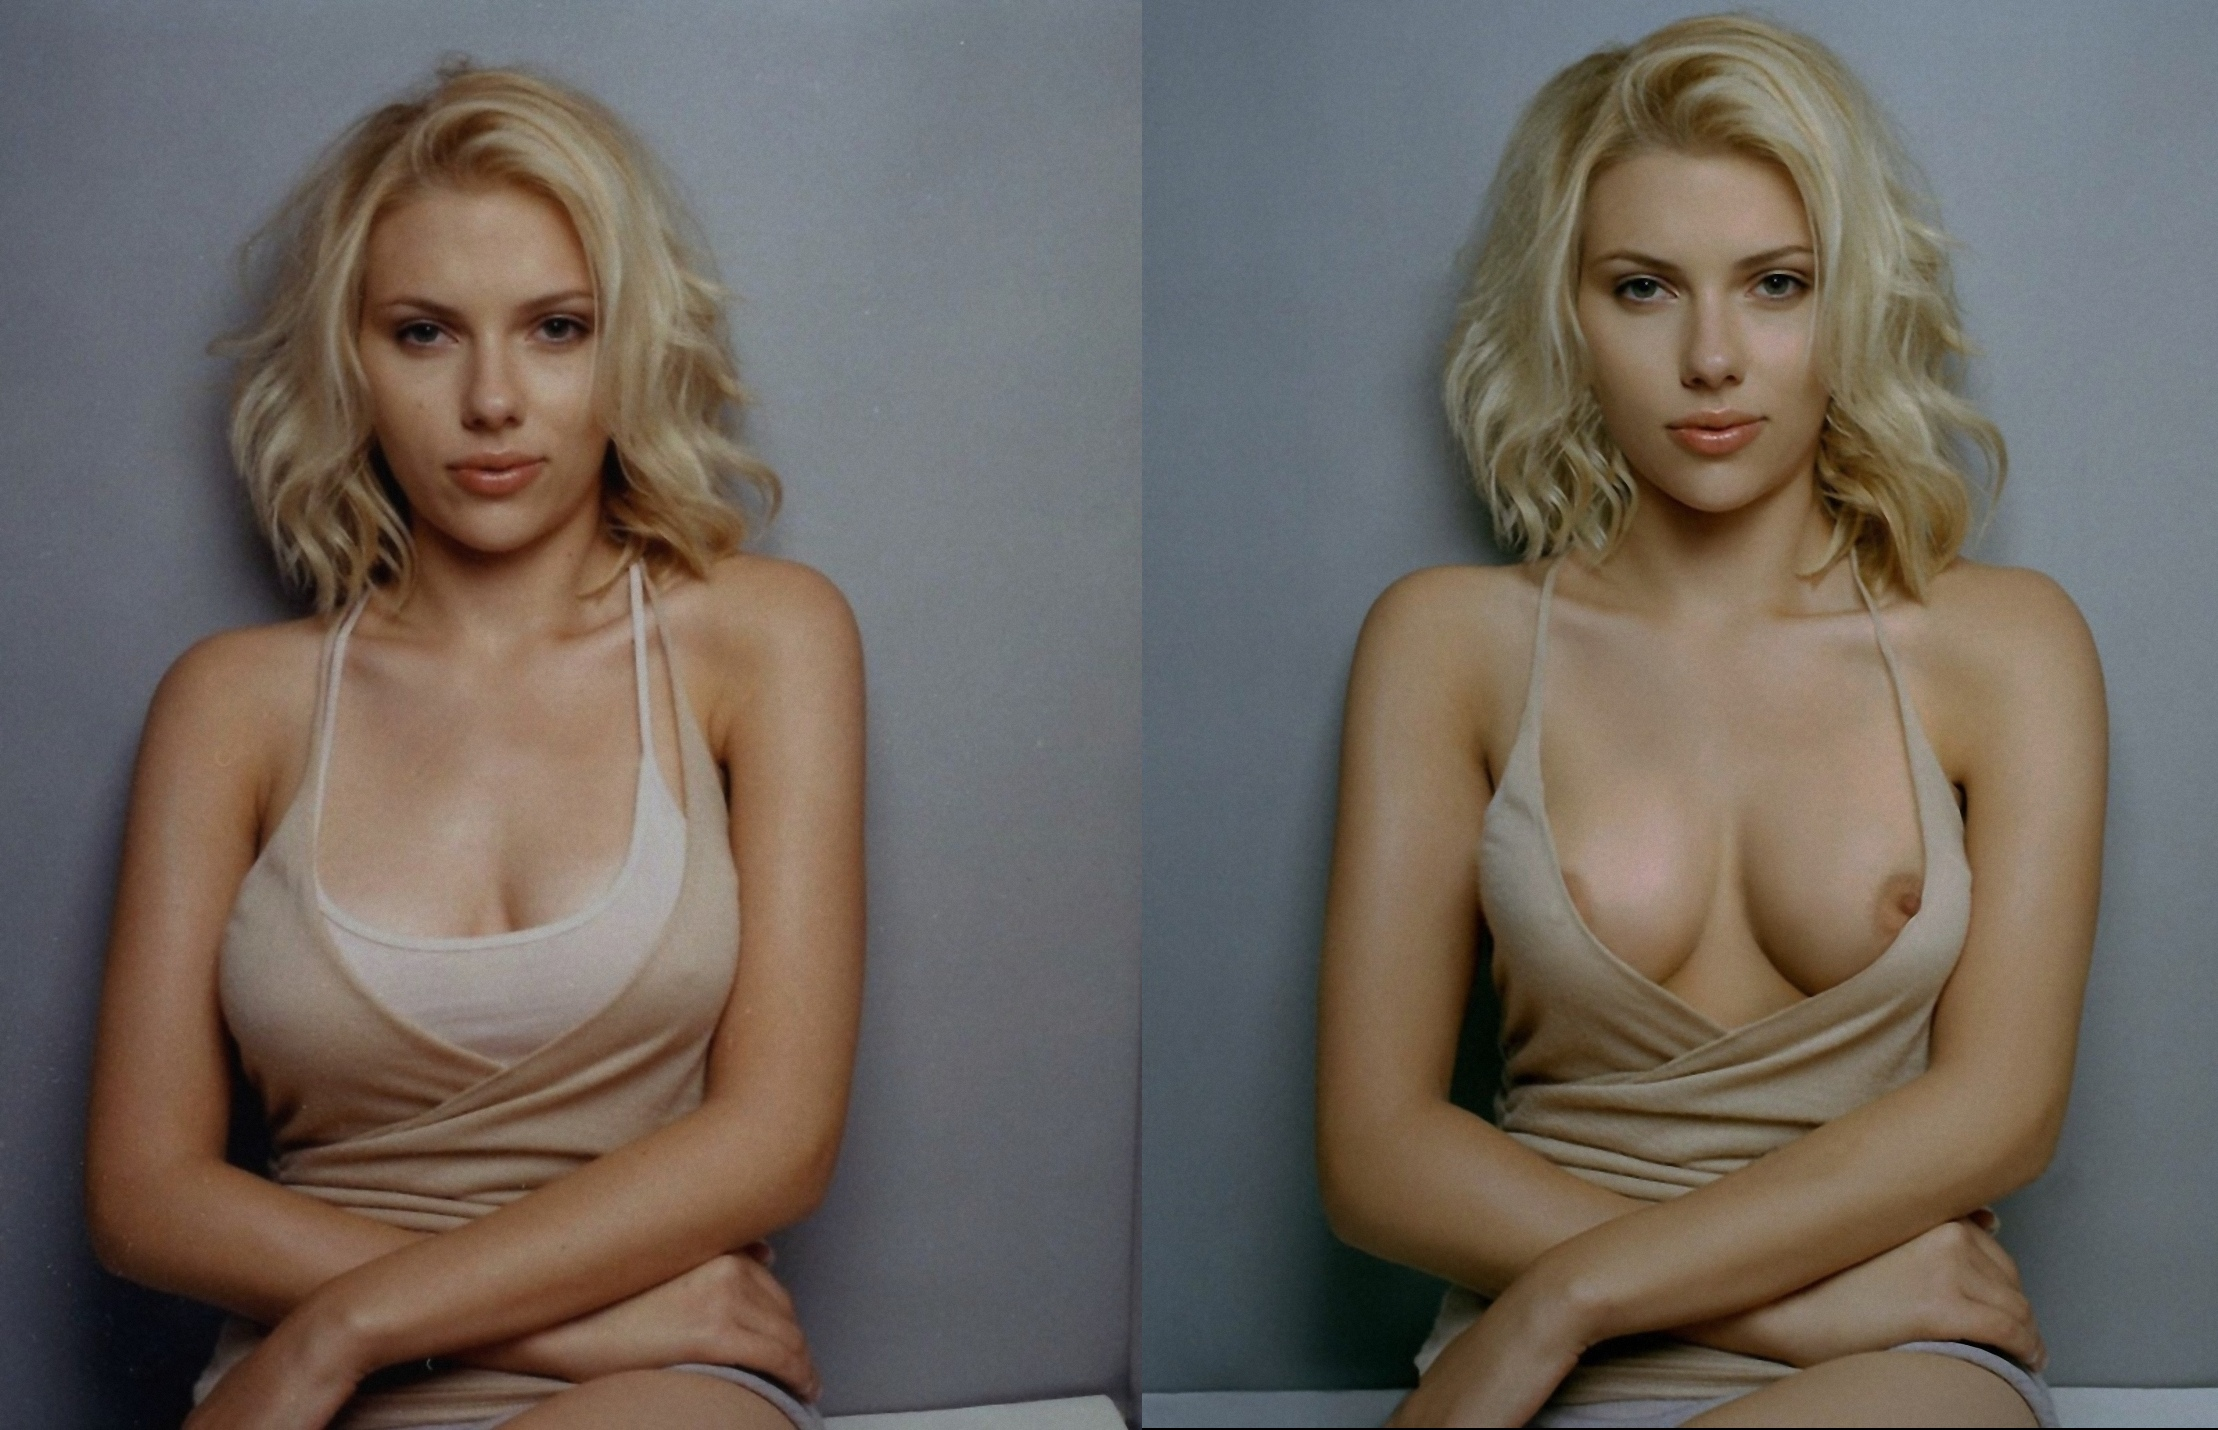 Scarlett johansson nude private photos and tv photo